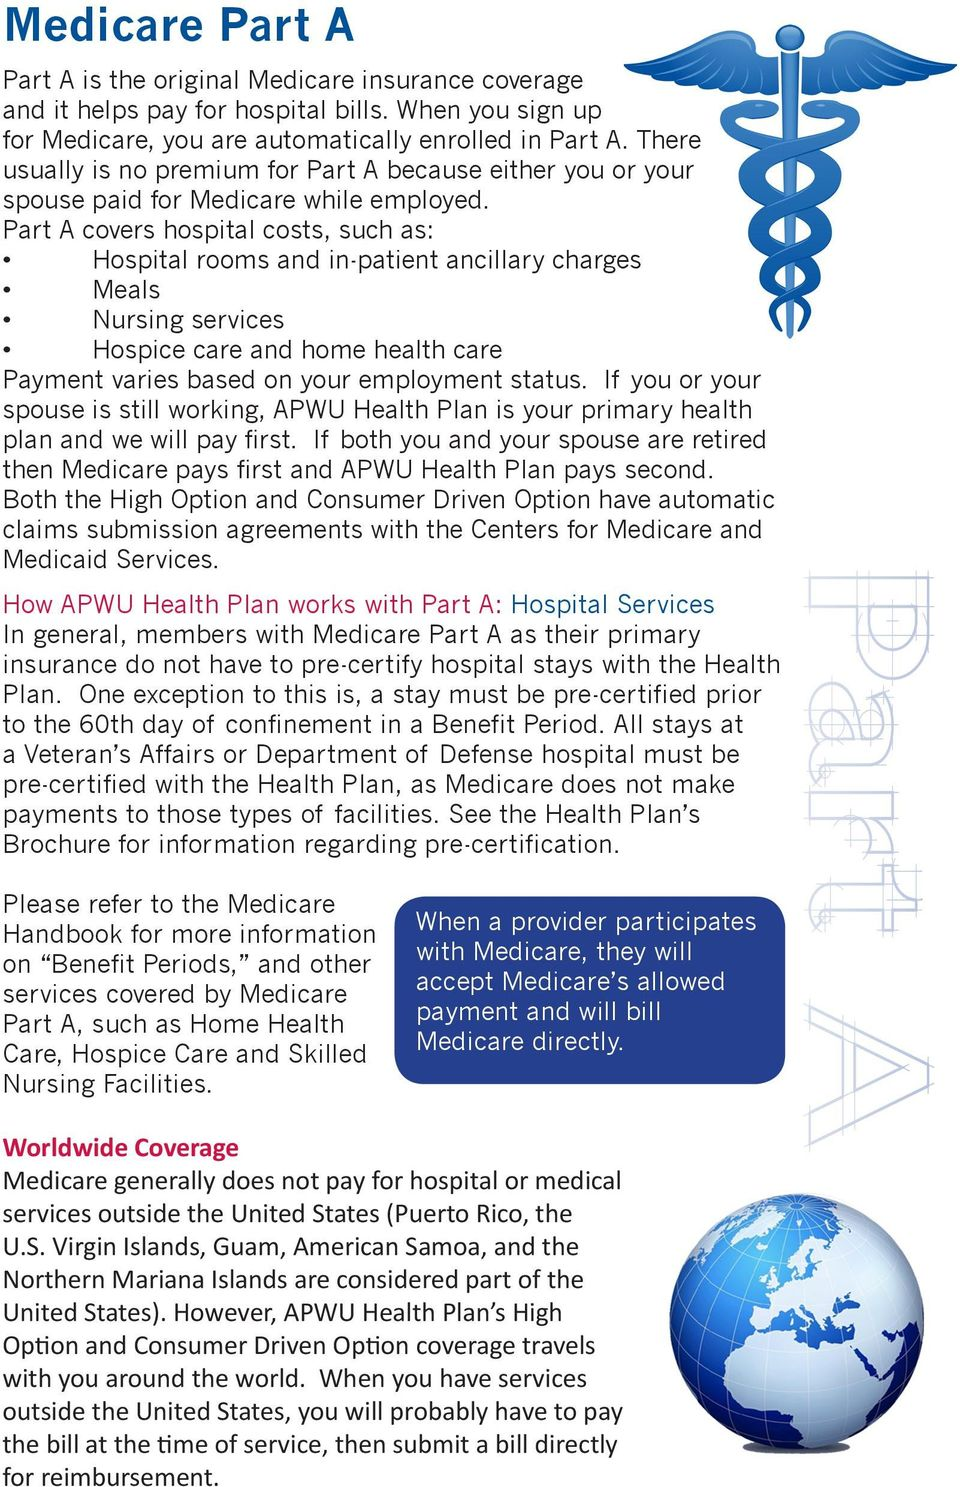 Part A covers hospital costs, such as: Hospital rooms and in-patient ancillary charges Meals Nursing services Hospice care and home health care Payment varies based on your employment status.